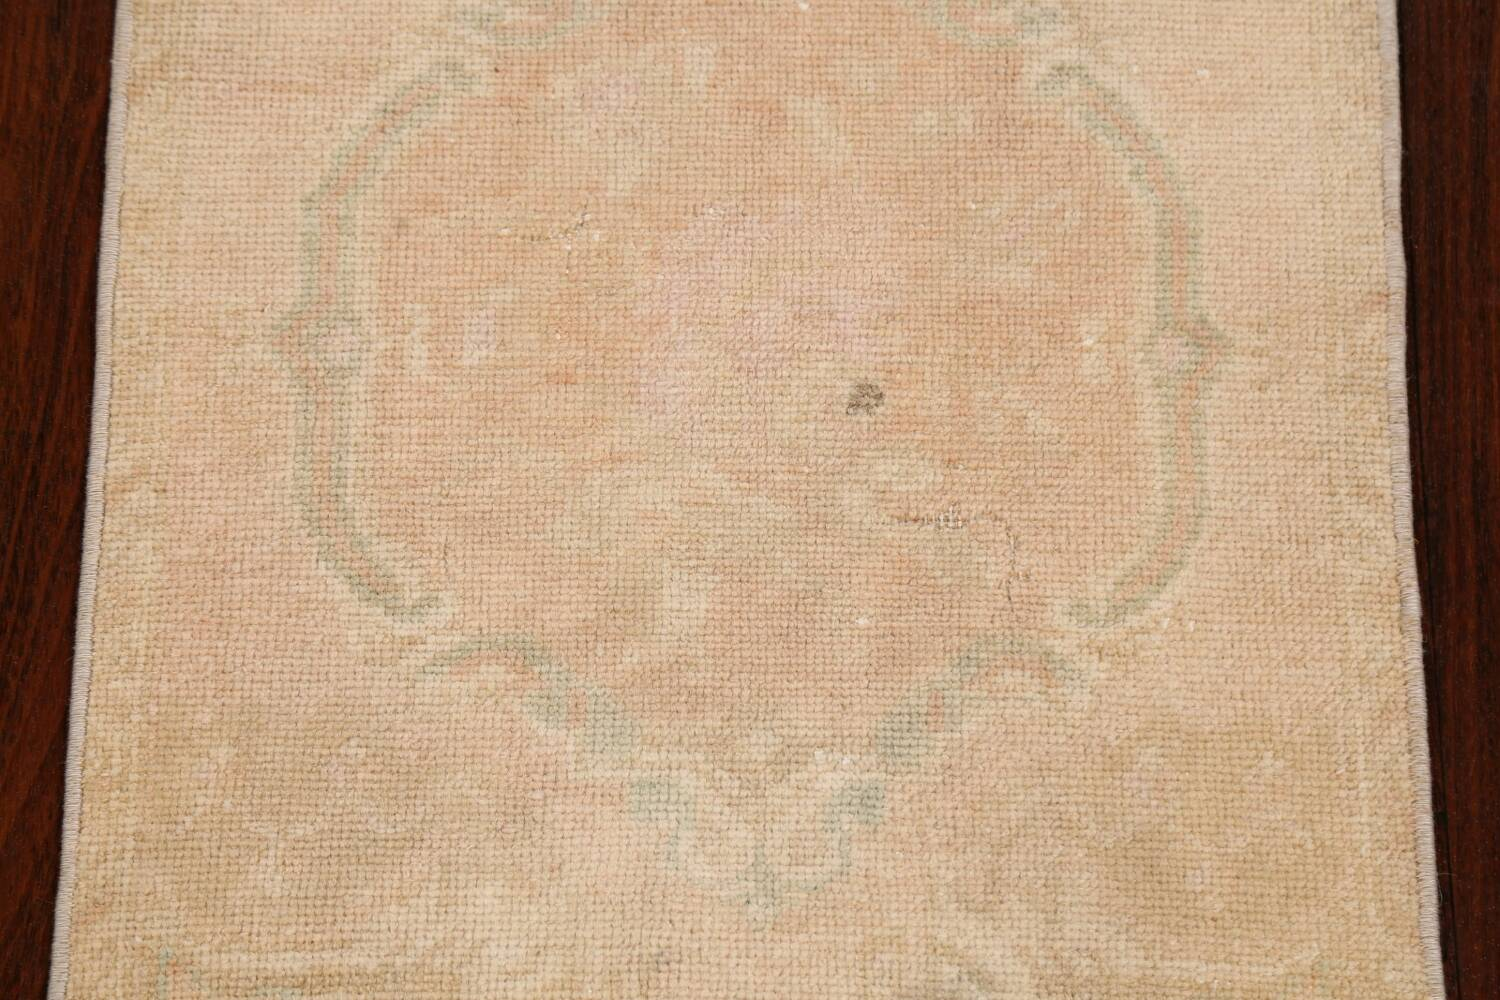 Muted Pale Orange Anatolian Turkish Area Rug 2x3 image 3